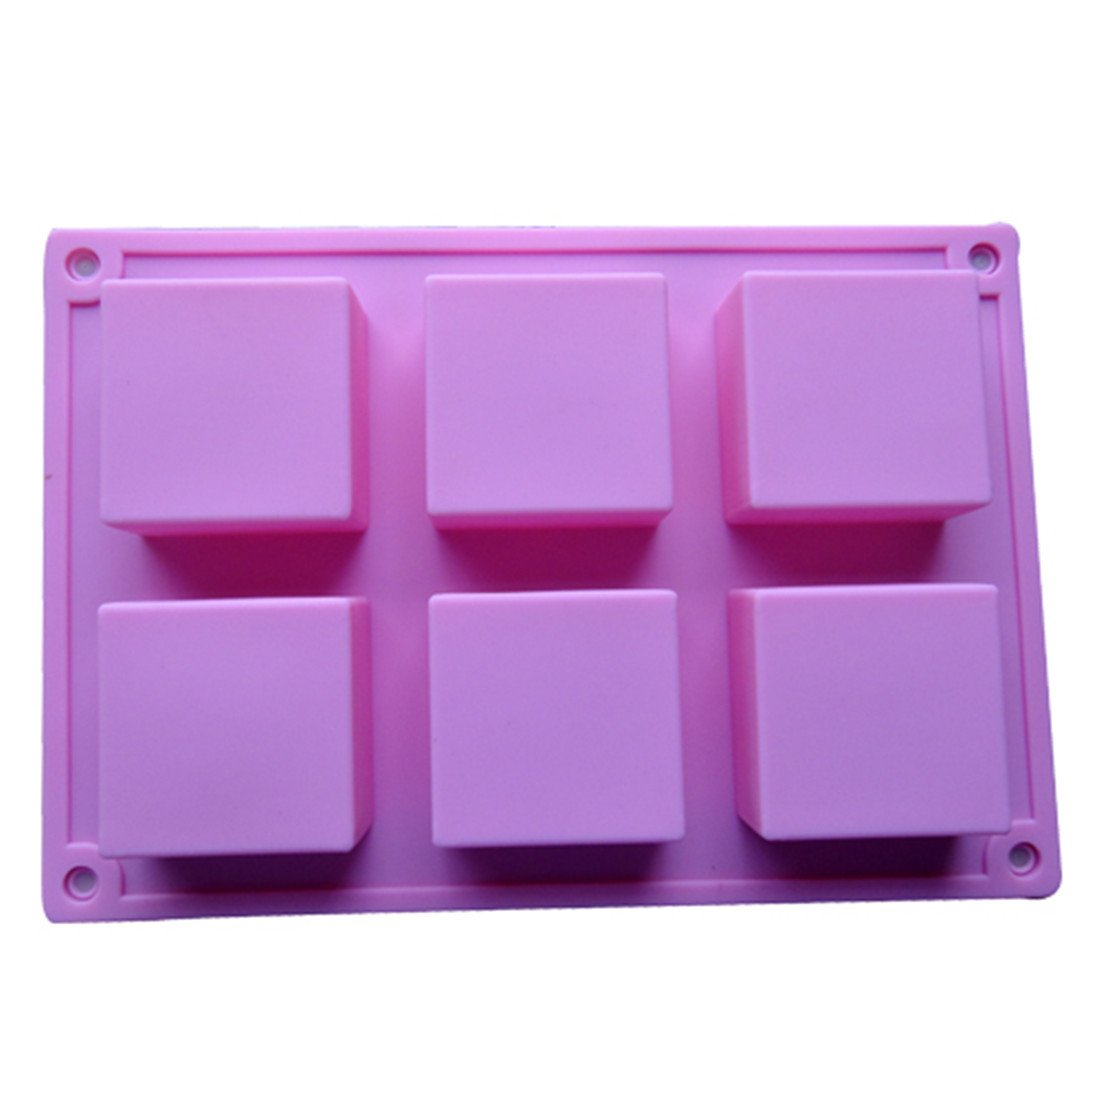 6 Cavity Square Handmade Soap Cake DIY Mold Silicone Mould for Homemade Craft Christmas Gift